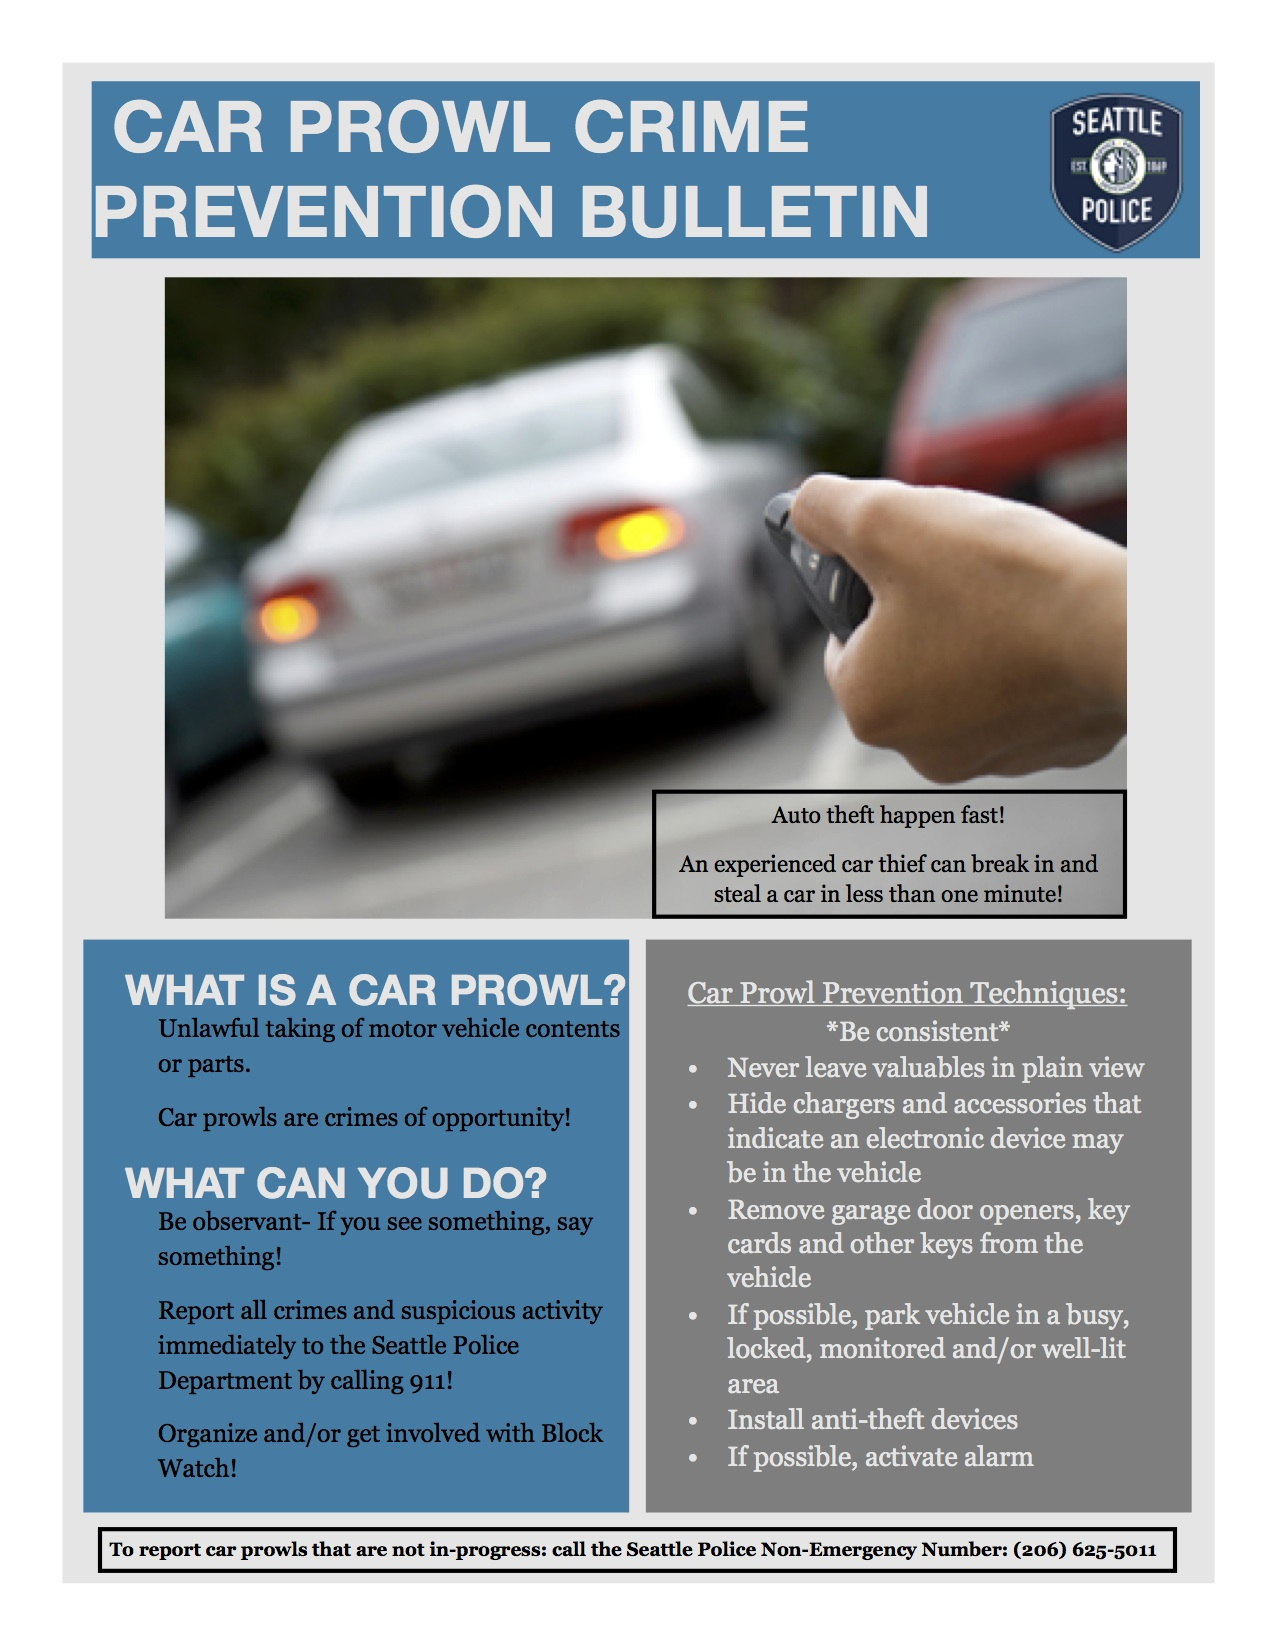 Seattle Police Department Car Prowl Prevention Tip Sheet